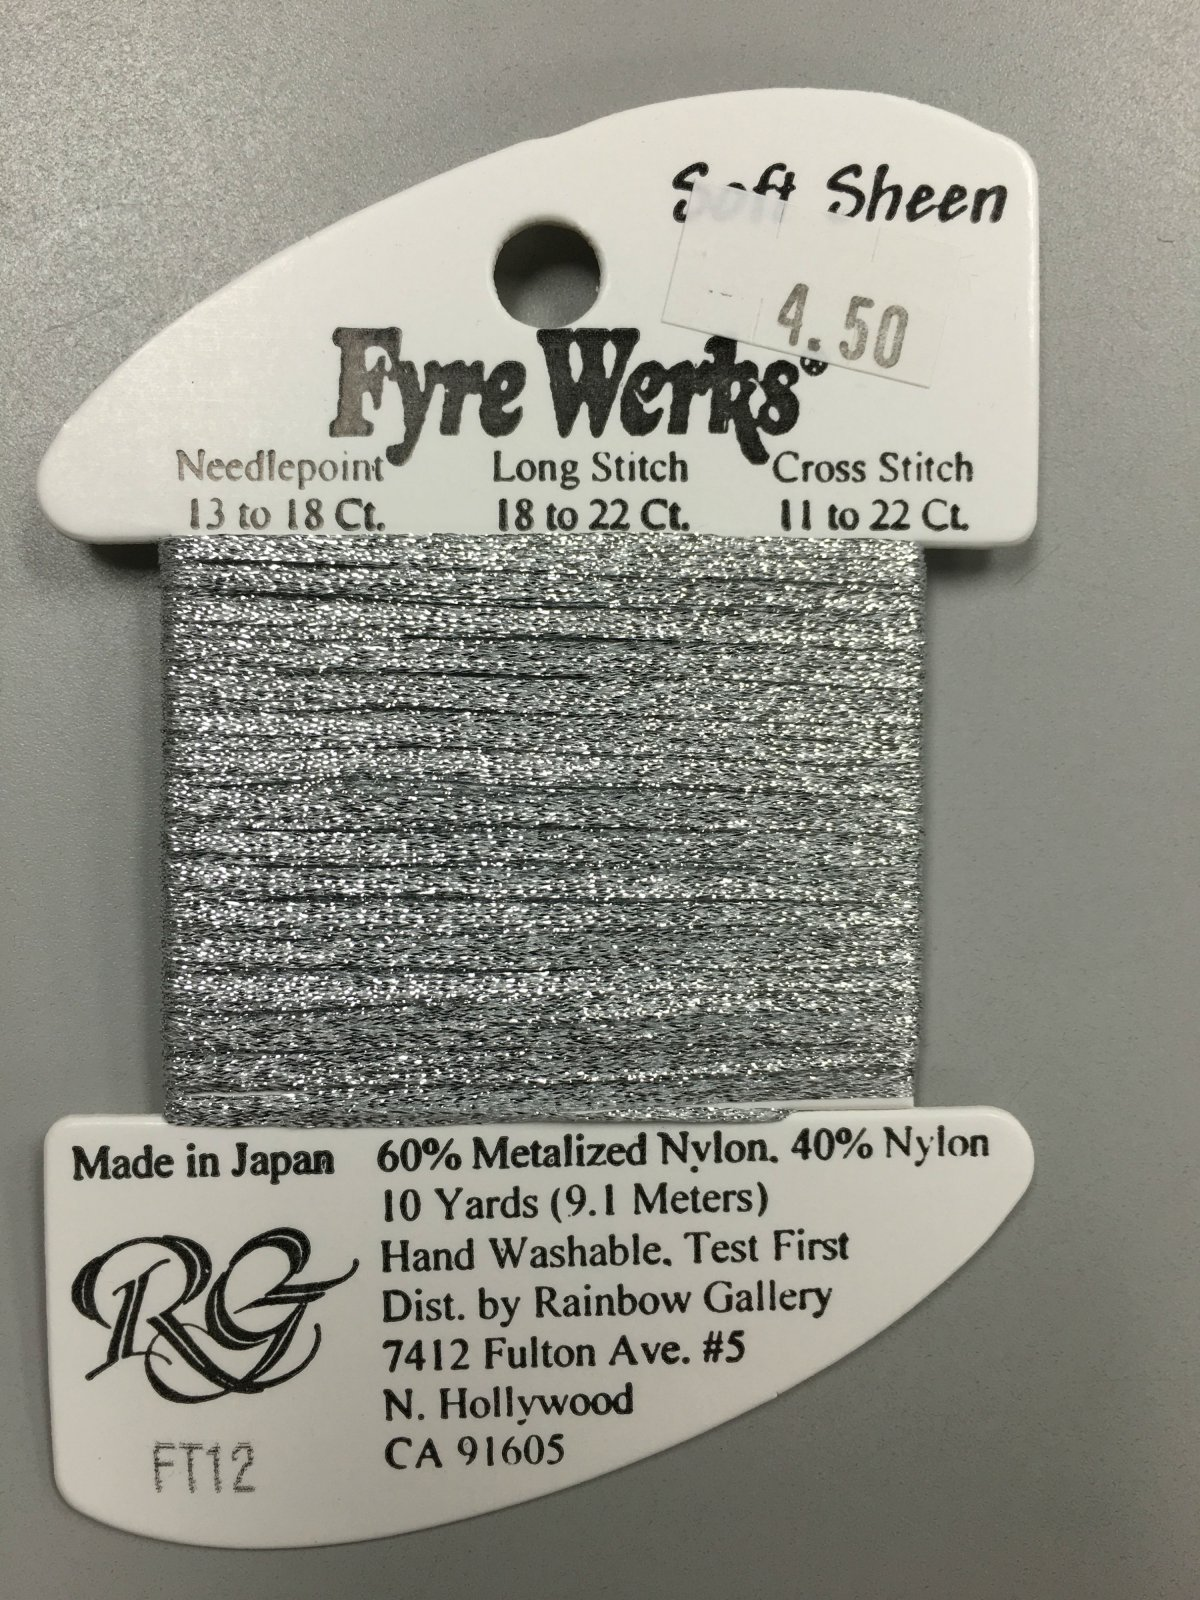 Fyre Werks Soft Sheen FT12